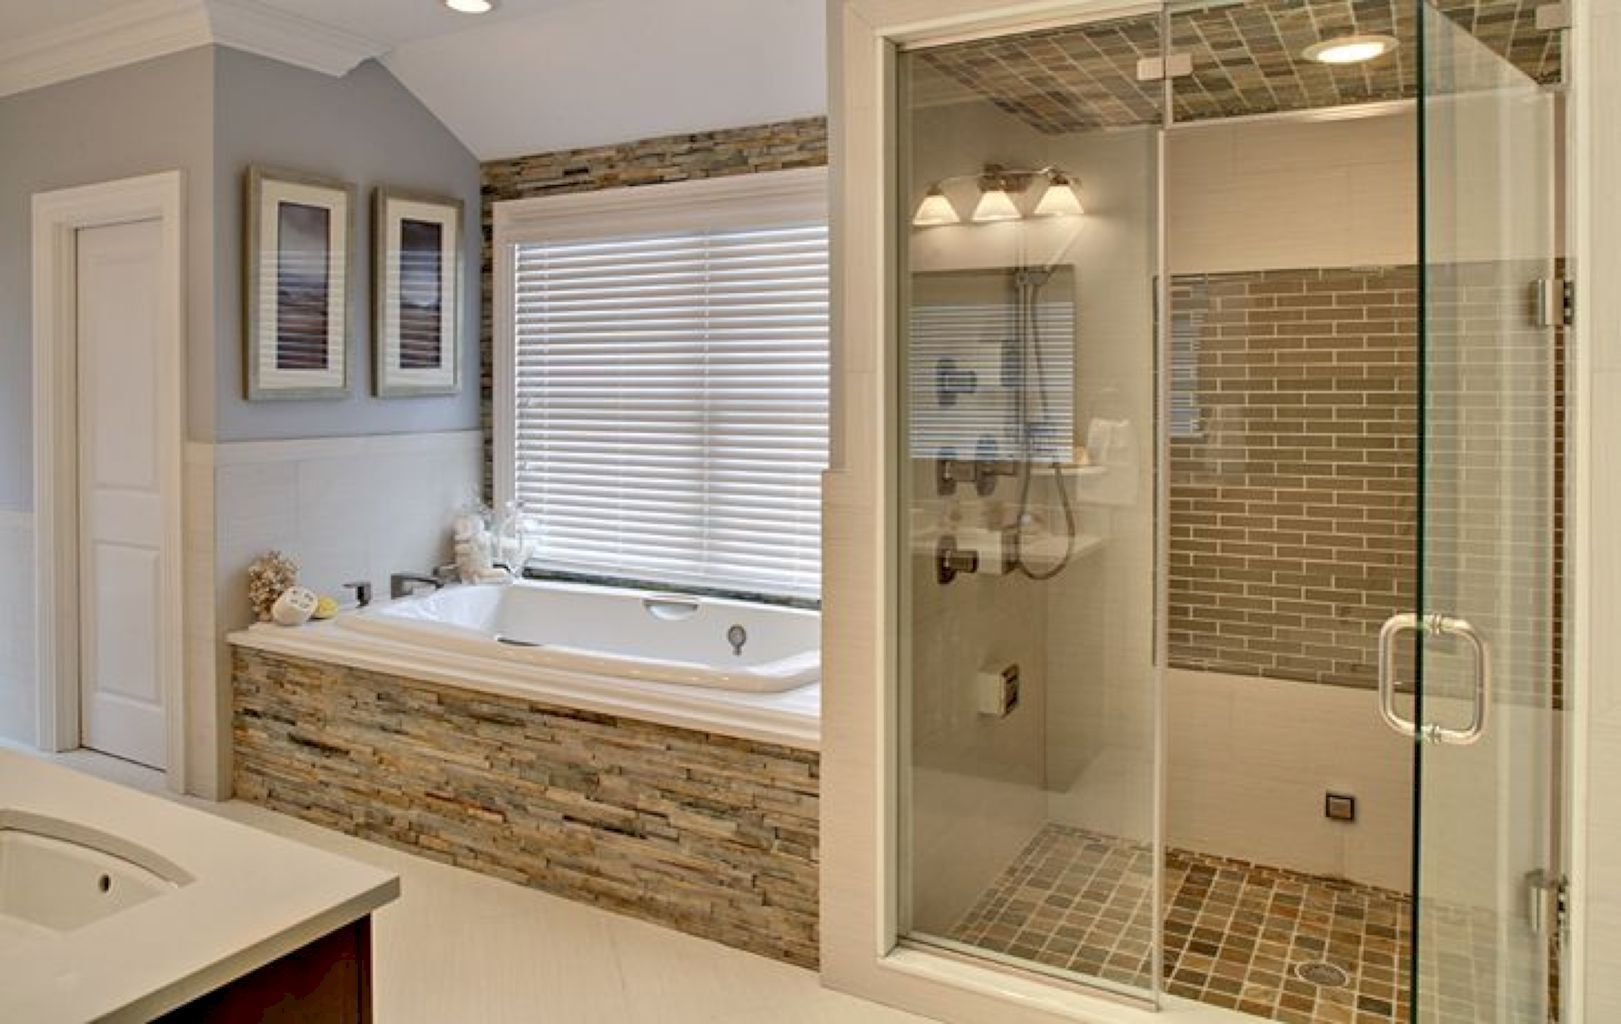 Master bedroom with jacuzzi tub  Classic Bathroom Designs  Awesome Bedroom Ideas  Pinterest